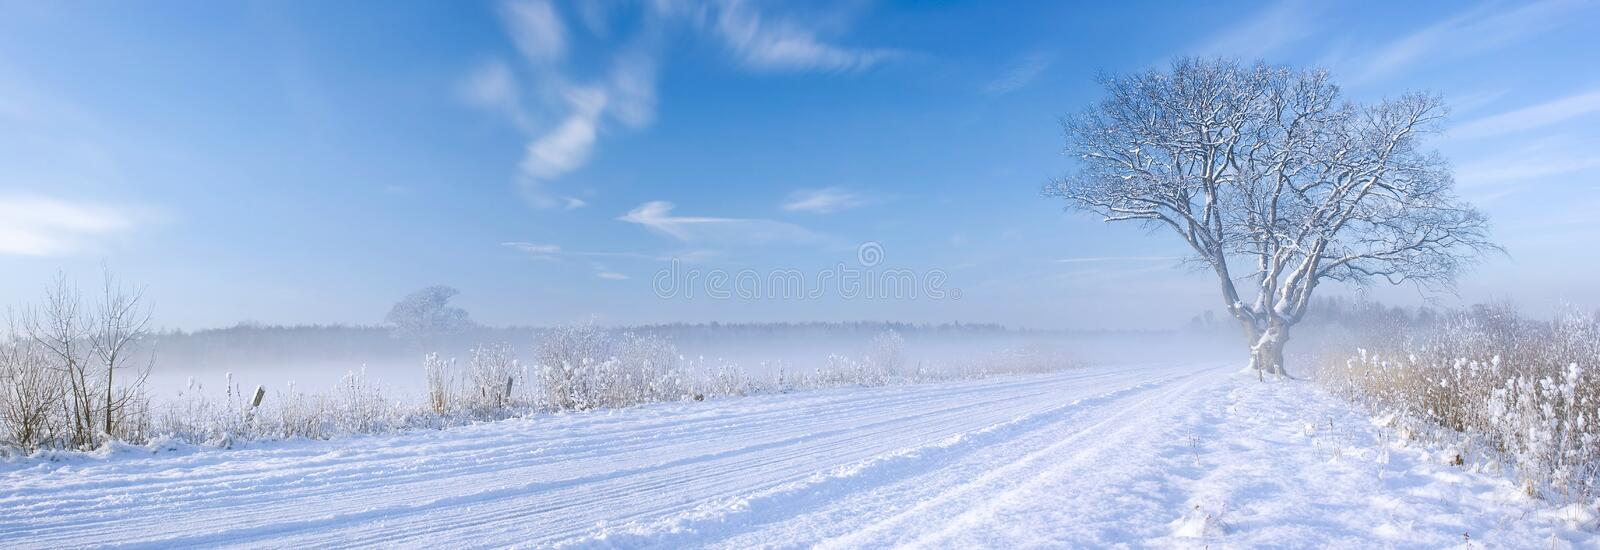 Lonely tree at off-road in the winter royalty free stock images